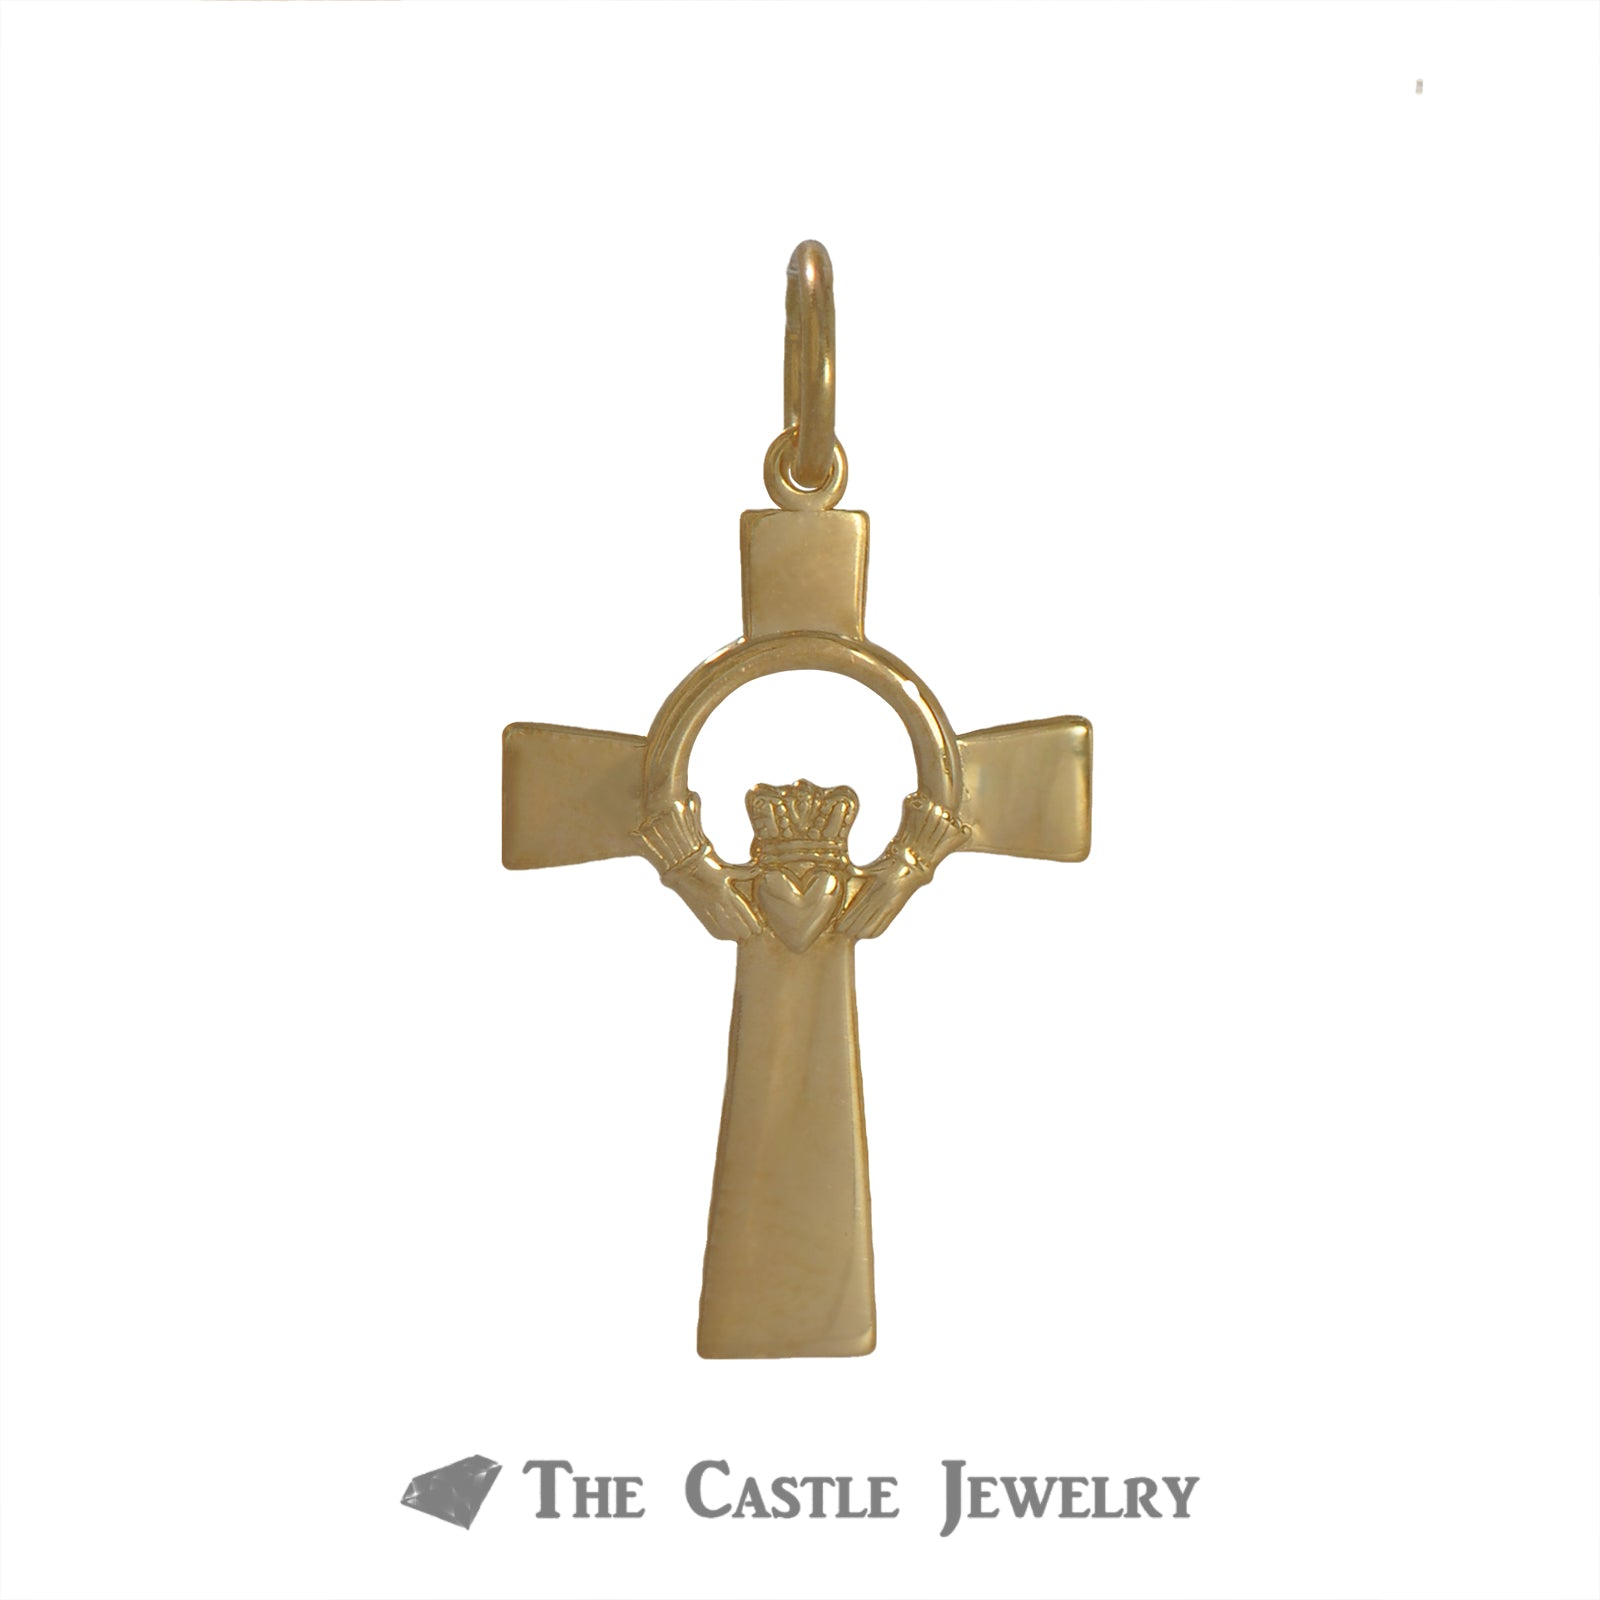 Claddagh Cross Pendant Crafted in 14k Yellow Gold